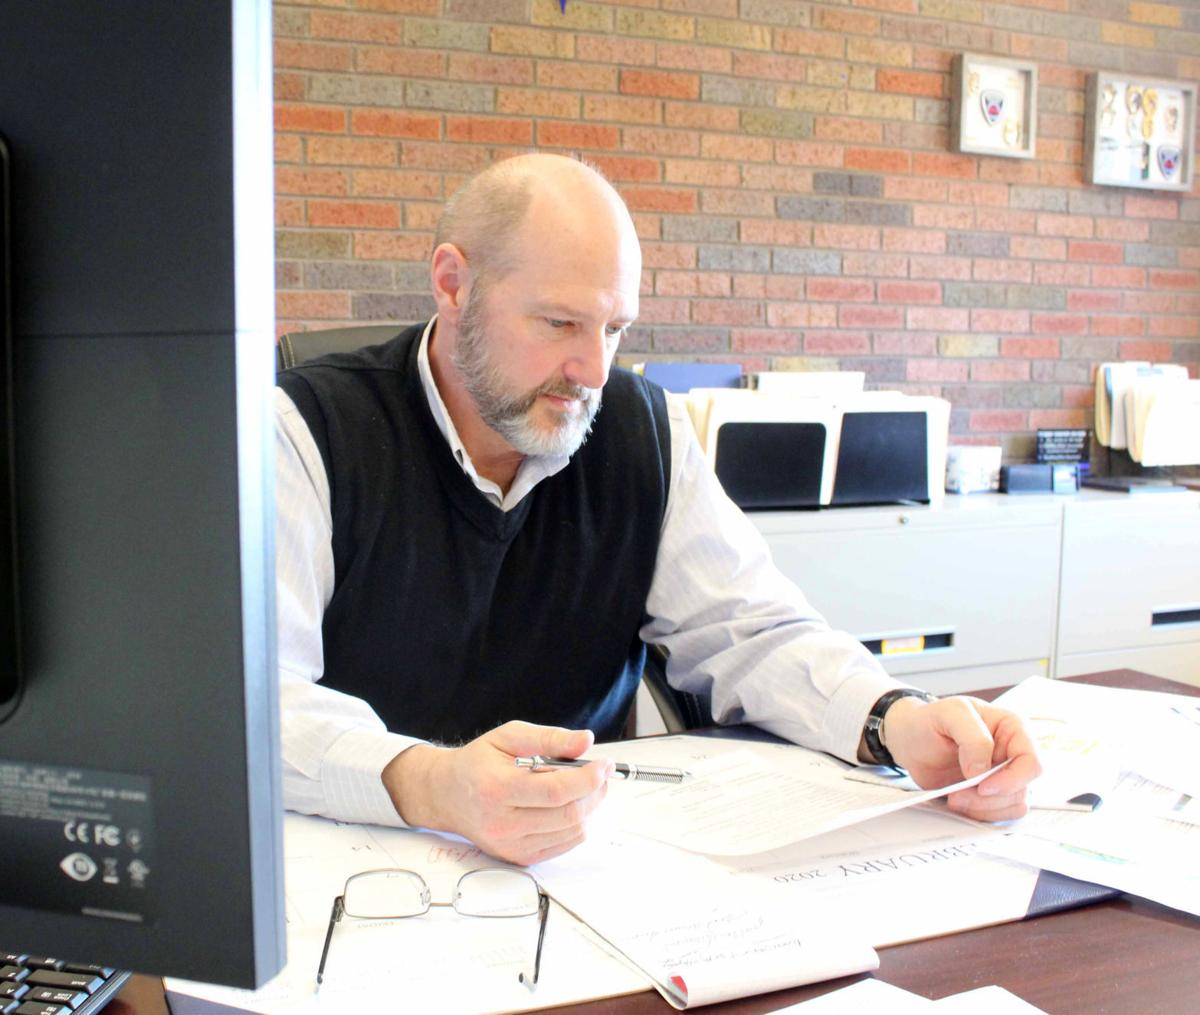 Tim glances at list of committess and commissions